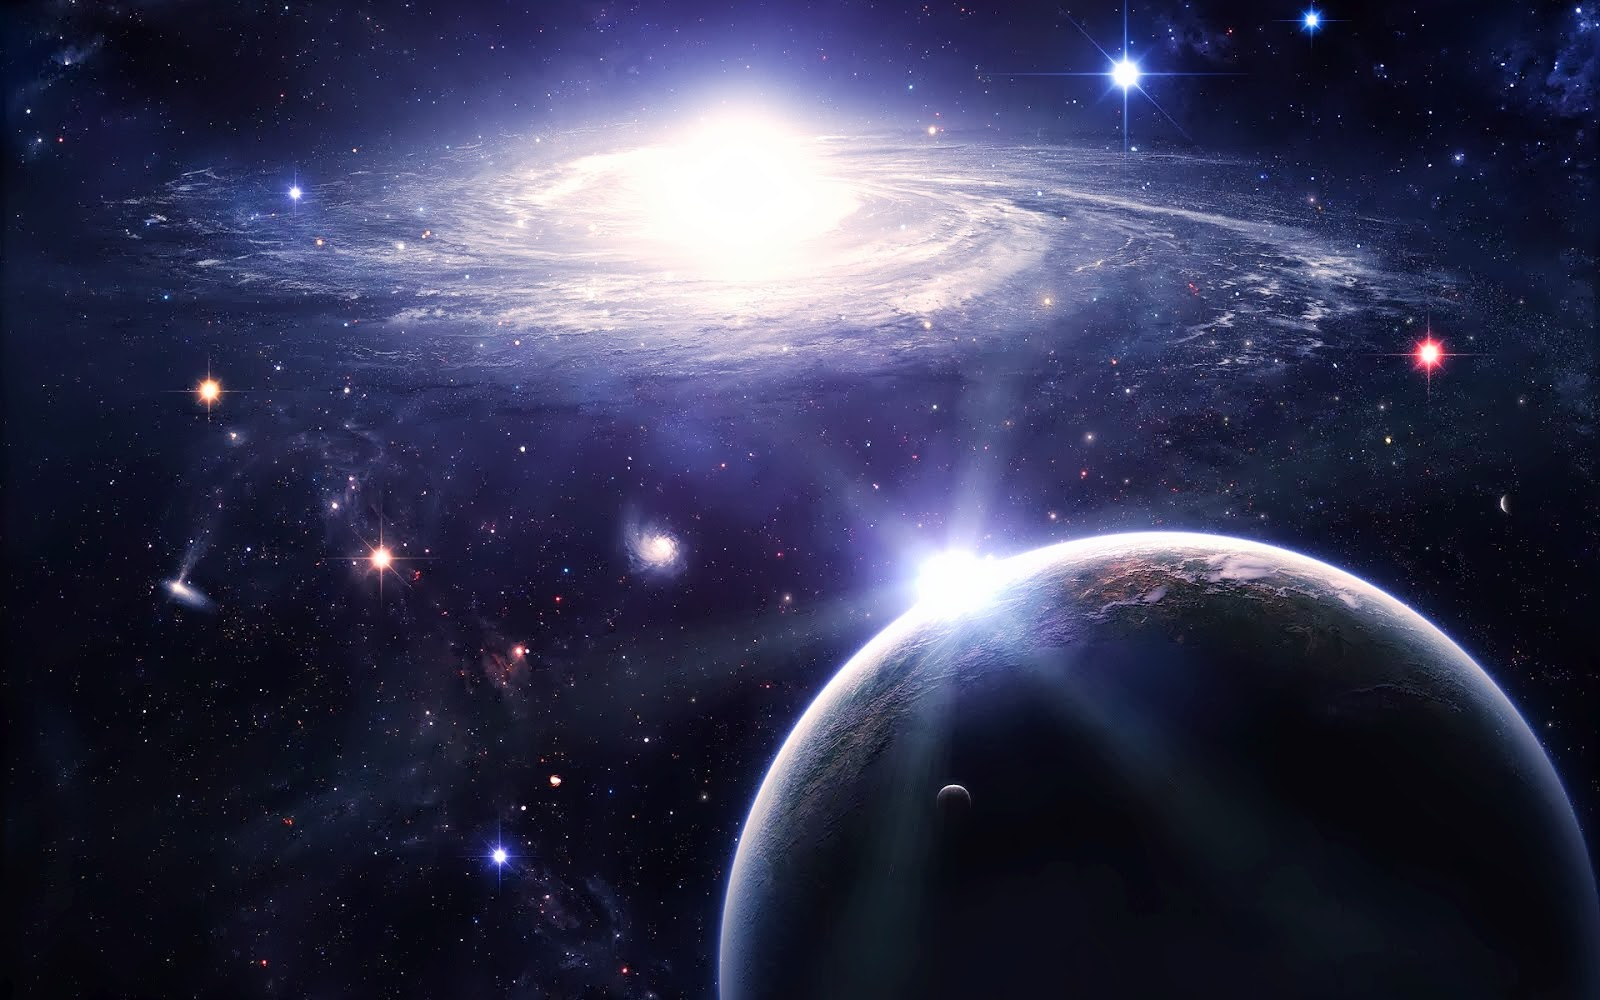 Galaxy space pictures space wallpaper - Space wallpaper desktop ...